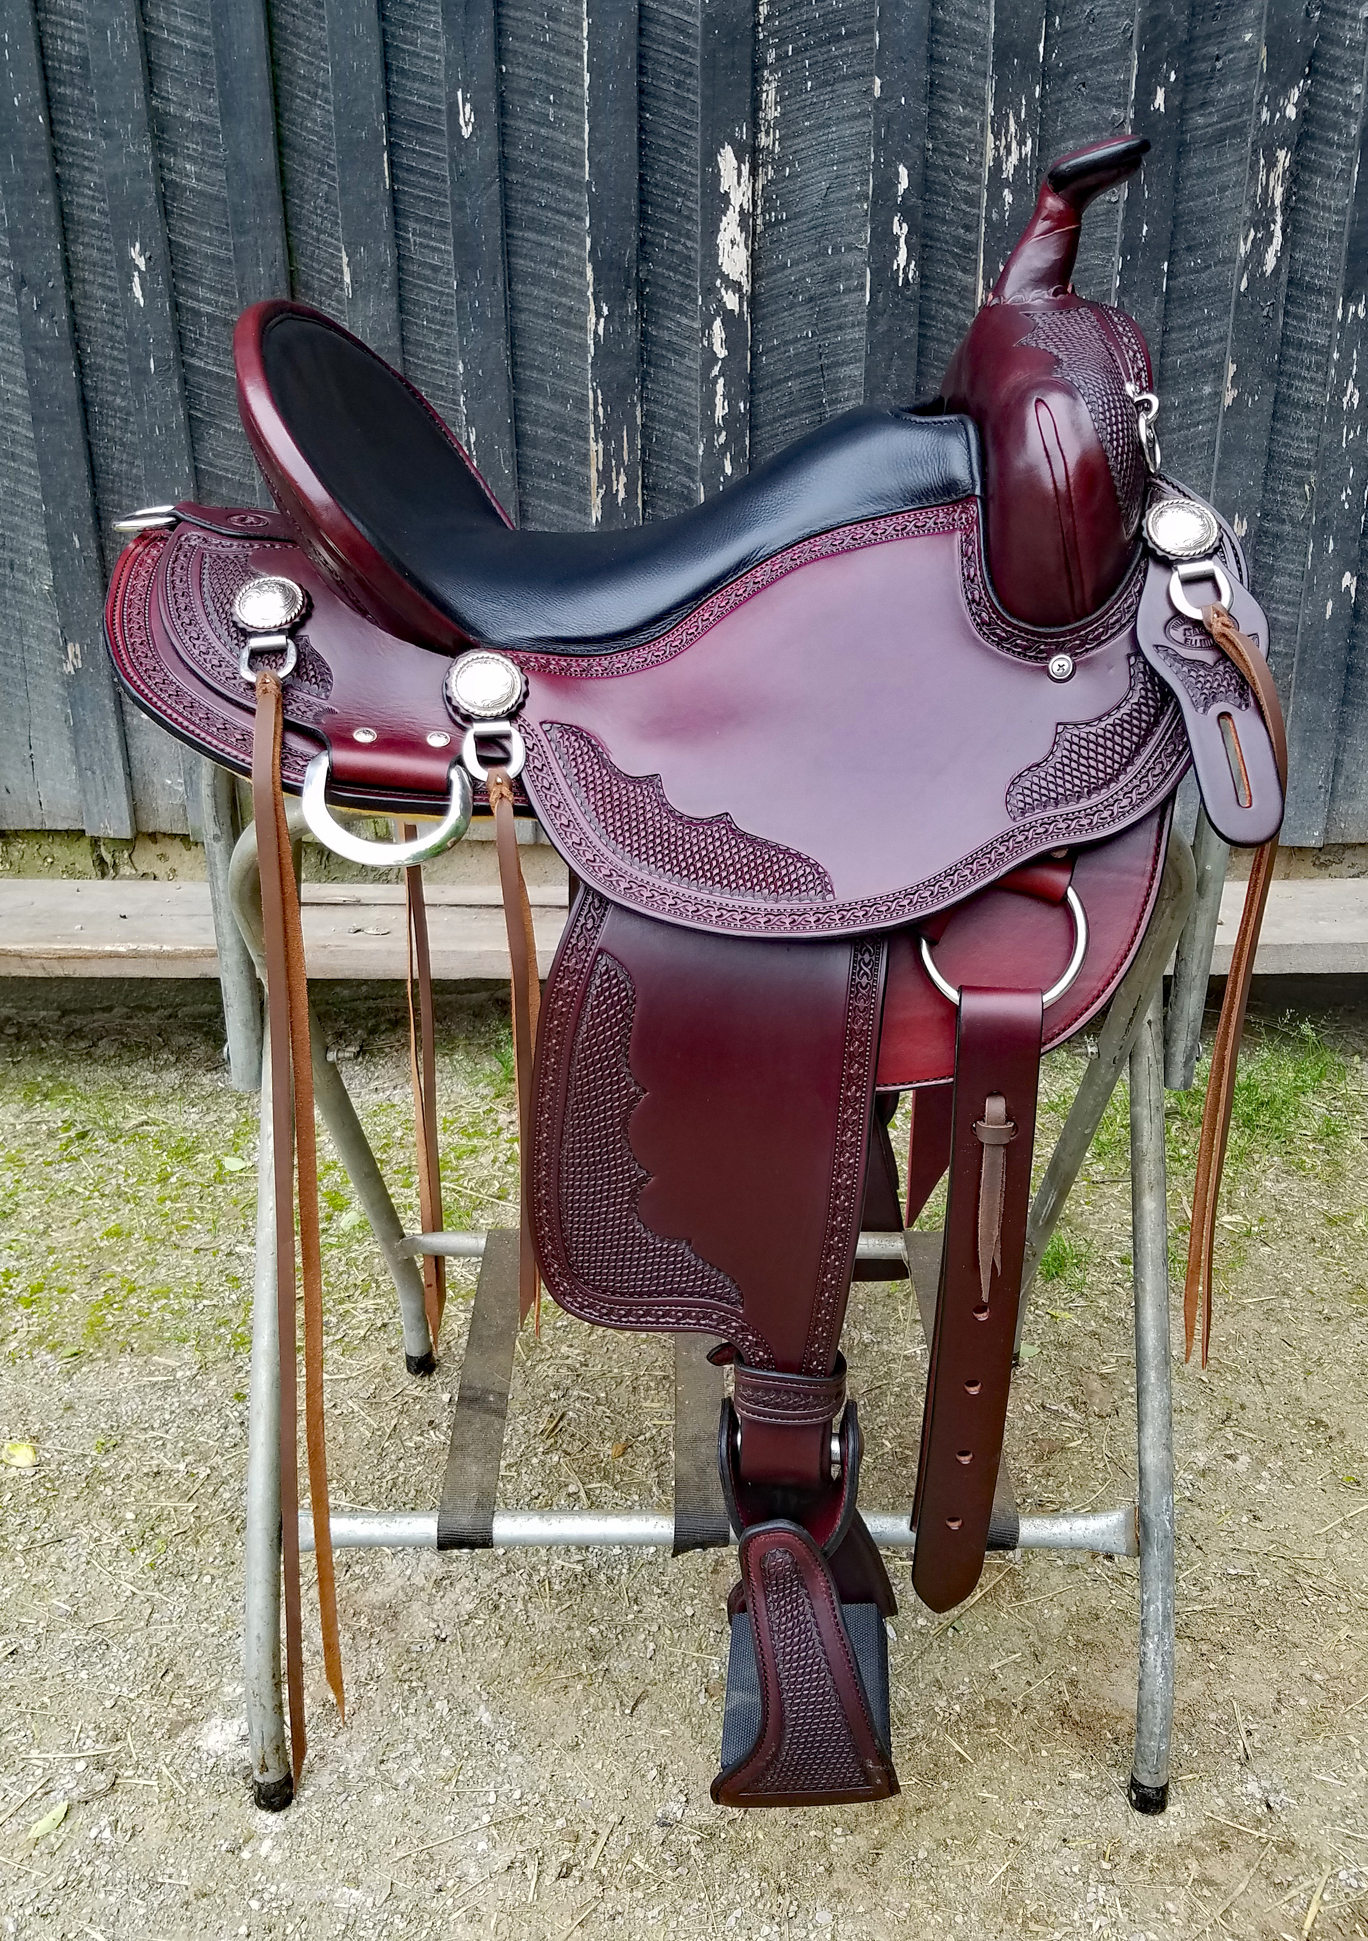 The finest saddles handcrafted by the legend, Eli Miller — Horse Of